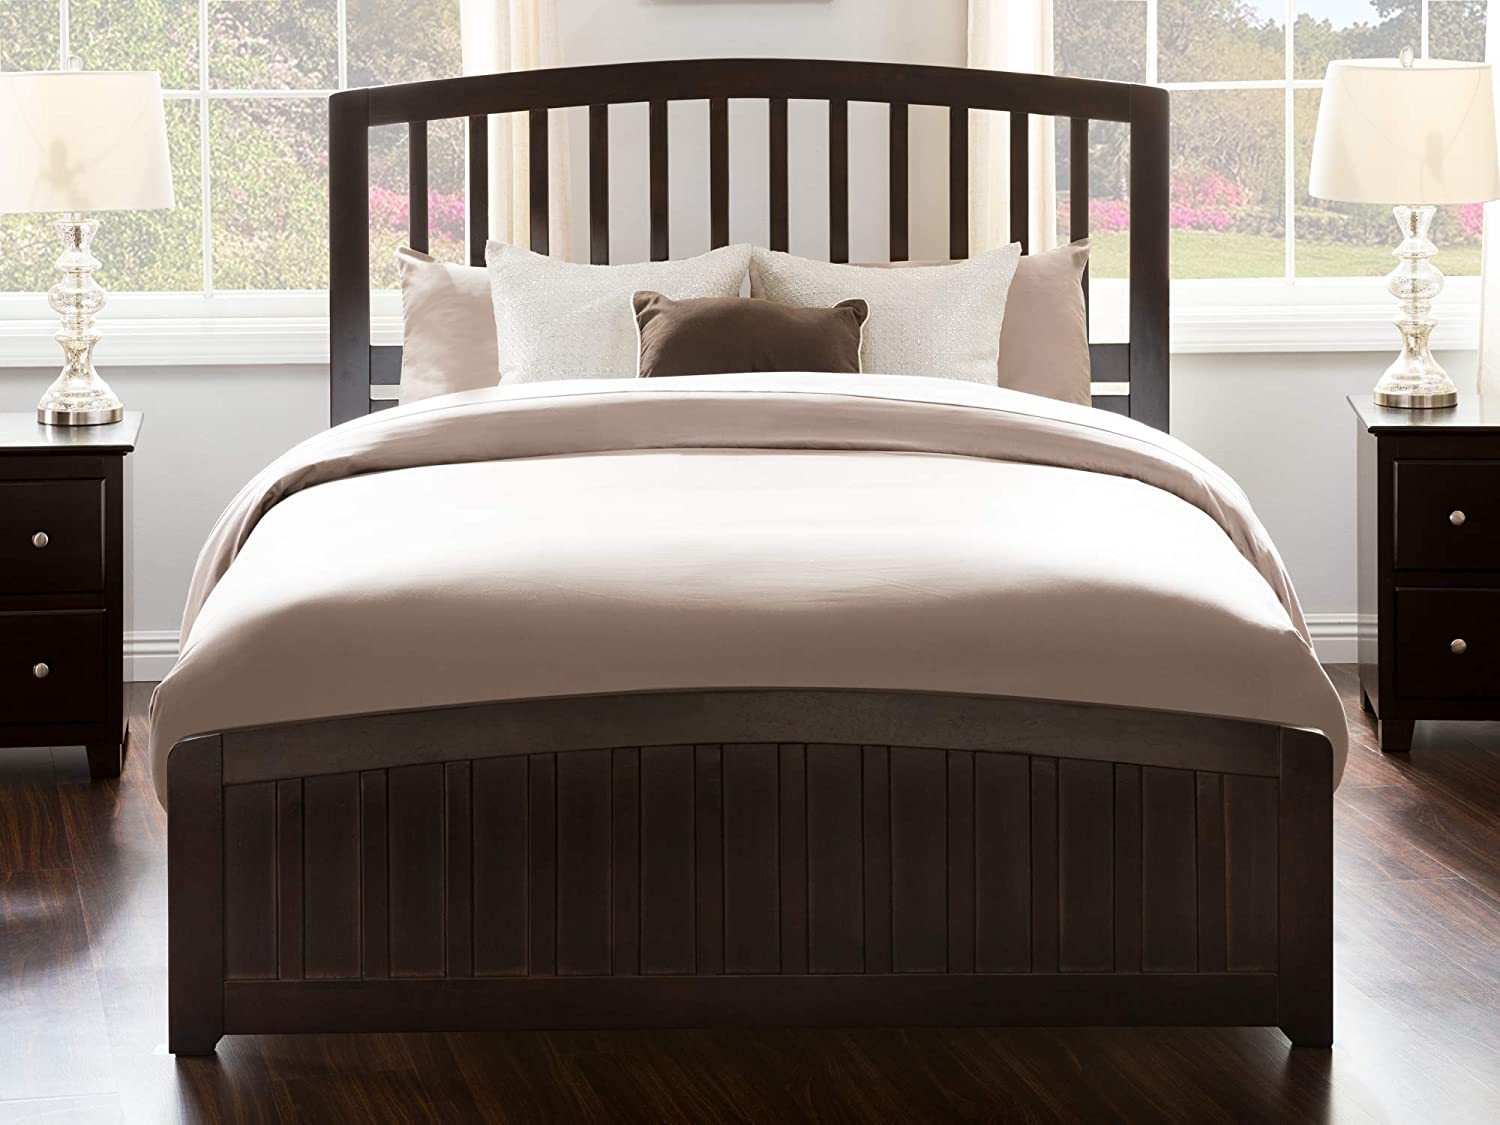 Atlantic Furniture Richmond Queen Traditional Bed with Matching Foot Board in Espresso